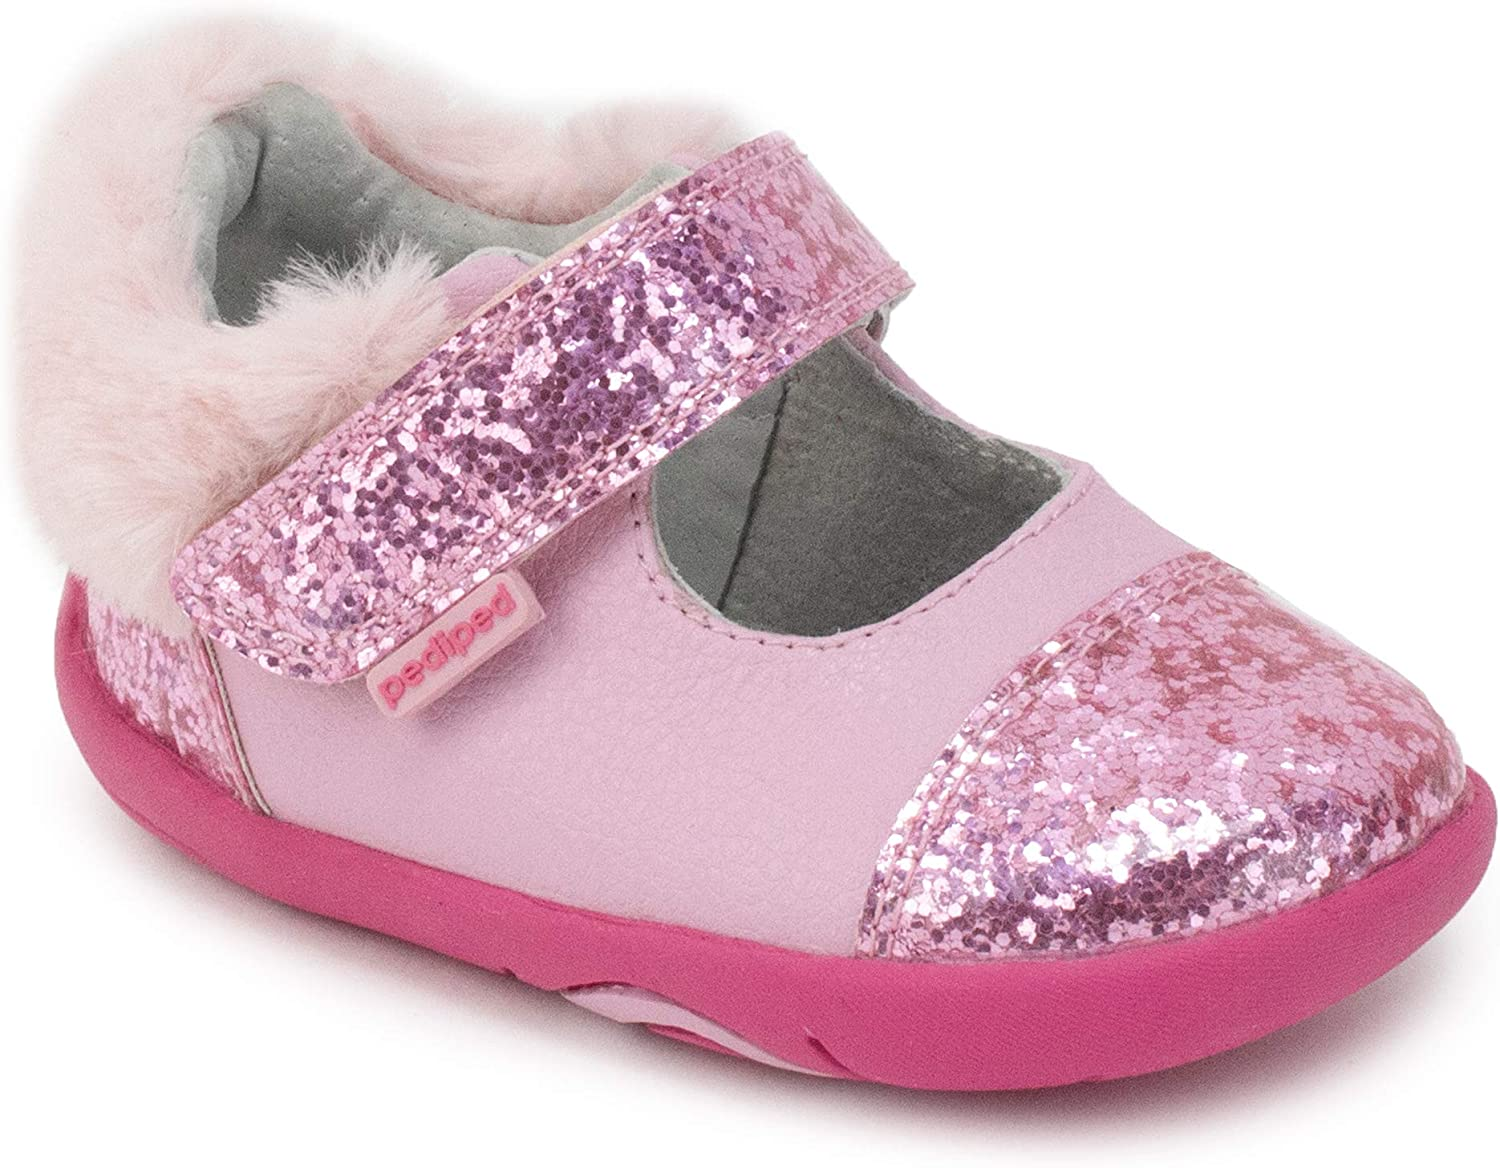 pediped, Girls, Toddler, Big Kid, Sassy, Pink, Leather and Man-Made Upper, Mary Jane - EU 21 (US 5.5)